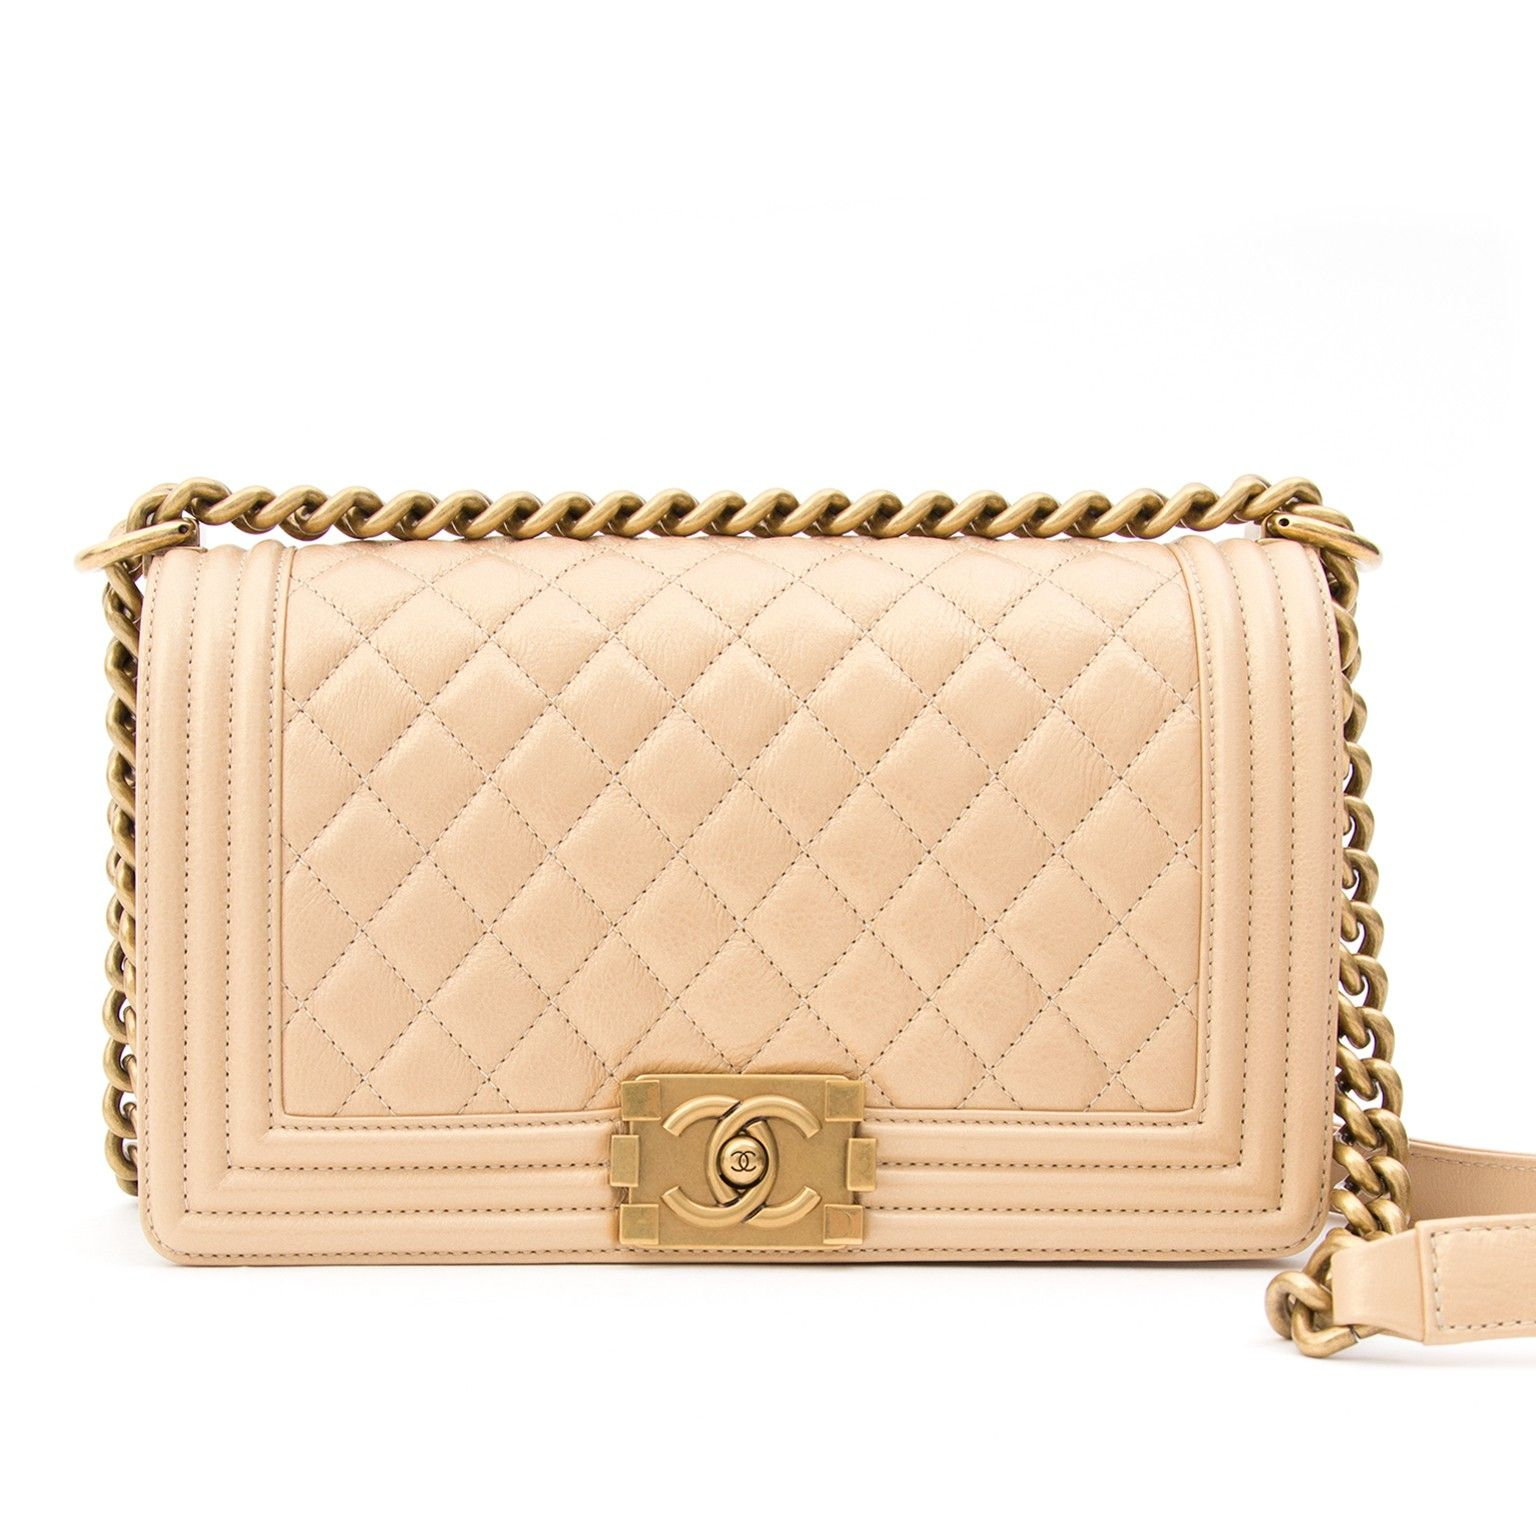 d3a59f7aa4bb Chanel Pearl Beige Calfskin Medium Boy Bag | wish list | Chanel ...